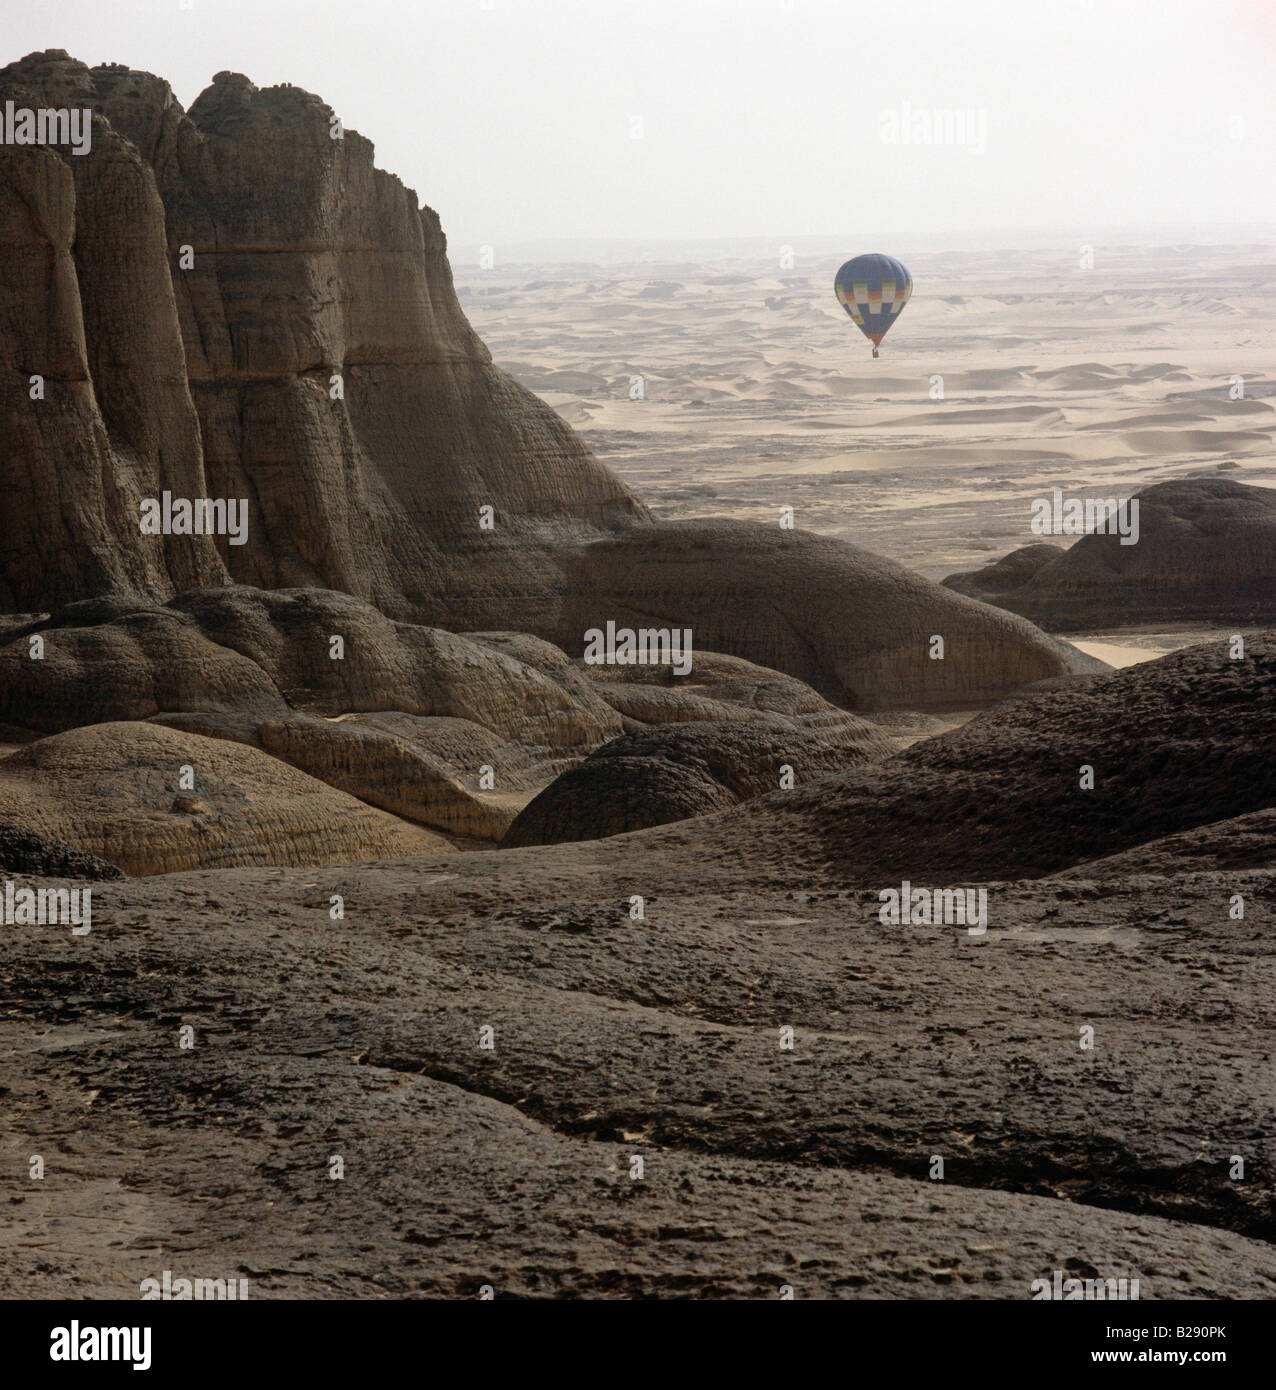 Balloon flying over  desert in background Tassili du Hoggar Algeria Sahara Pictures Photoshot - Stock Image